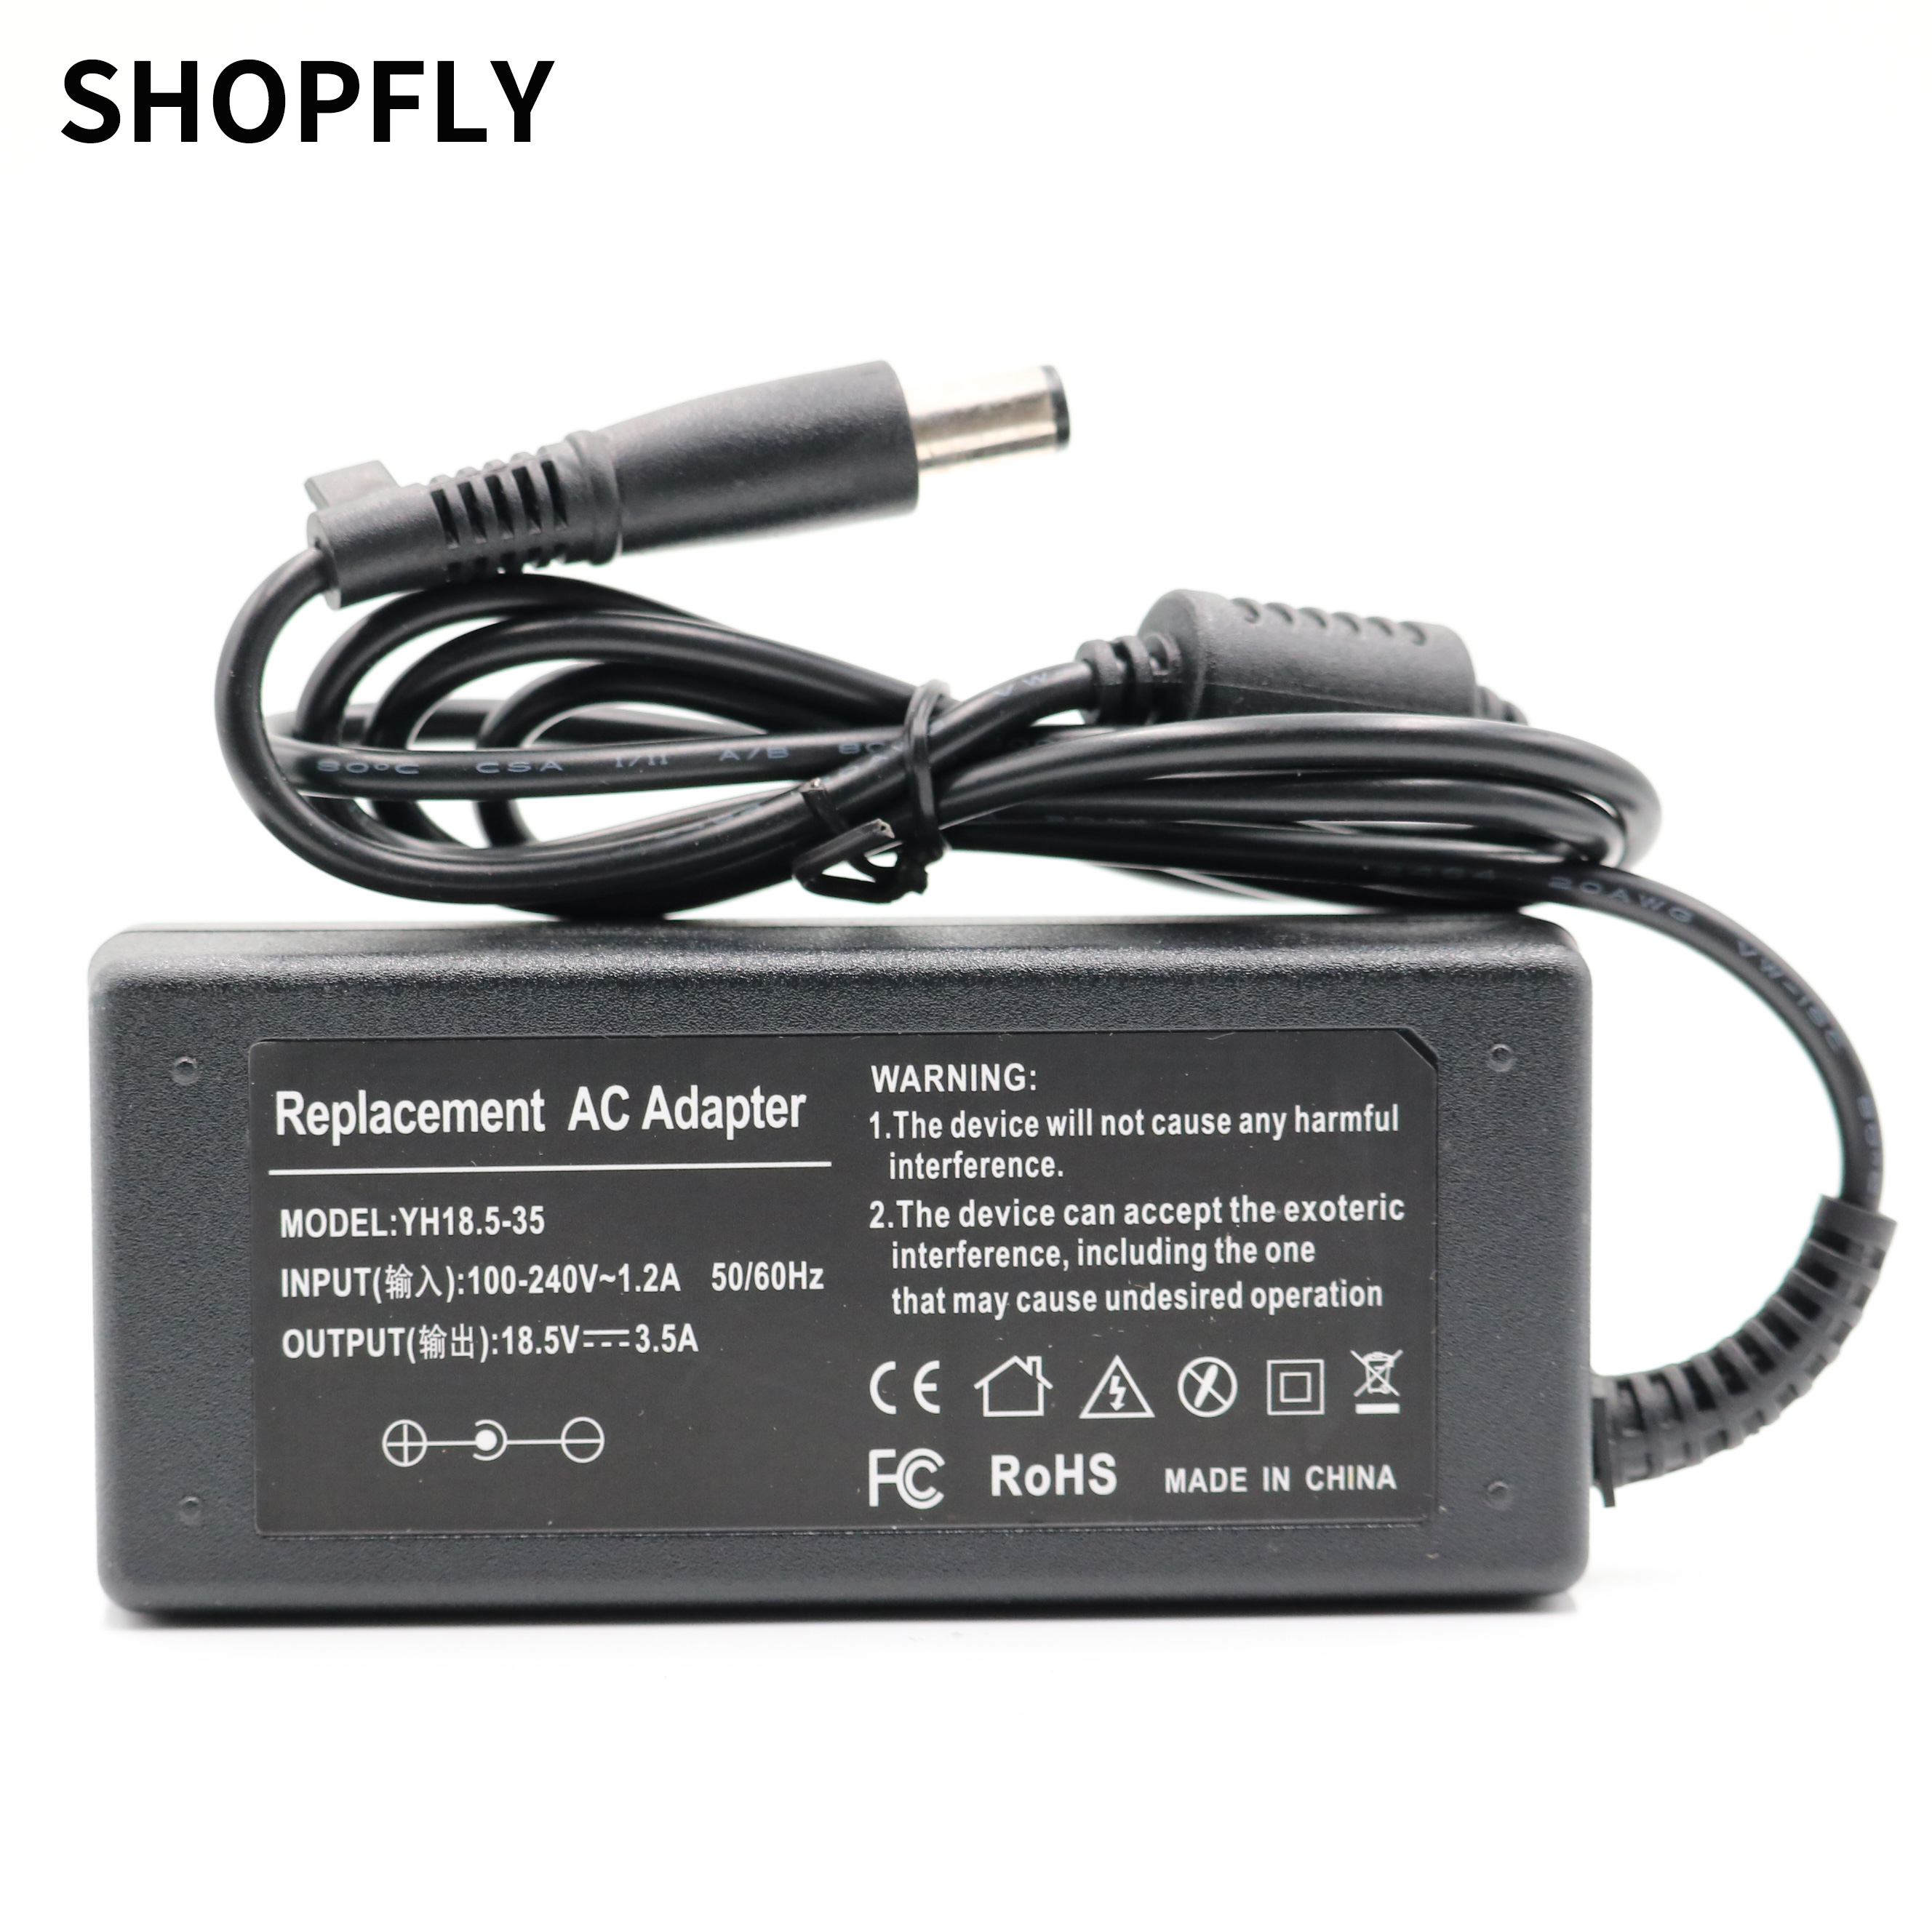 18.5V 3.5A 65W Original AC Adapter Charger Power Supply For HP Probook 430 440 450 455 640 645 650 655 G1 G2